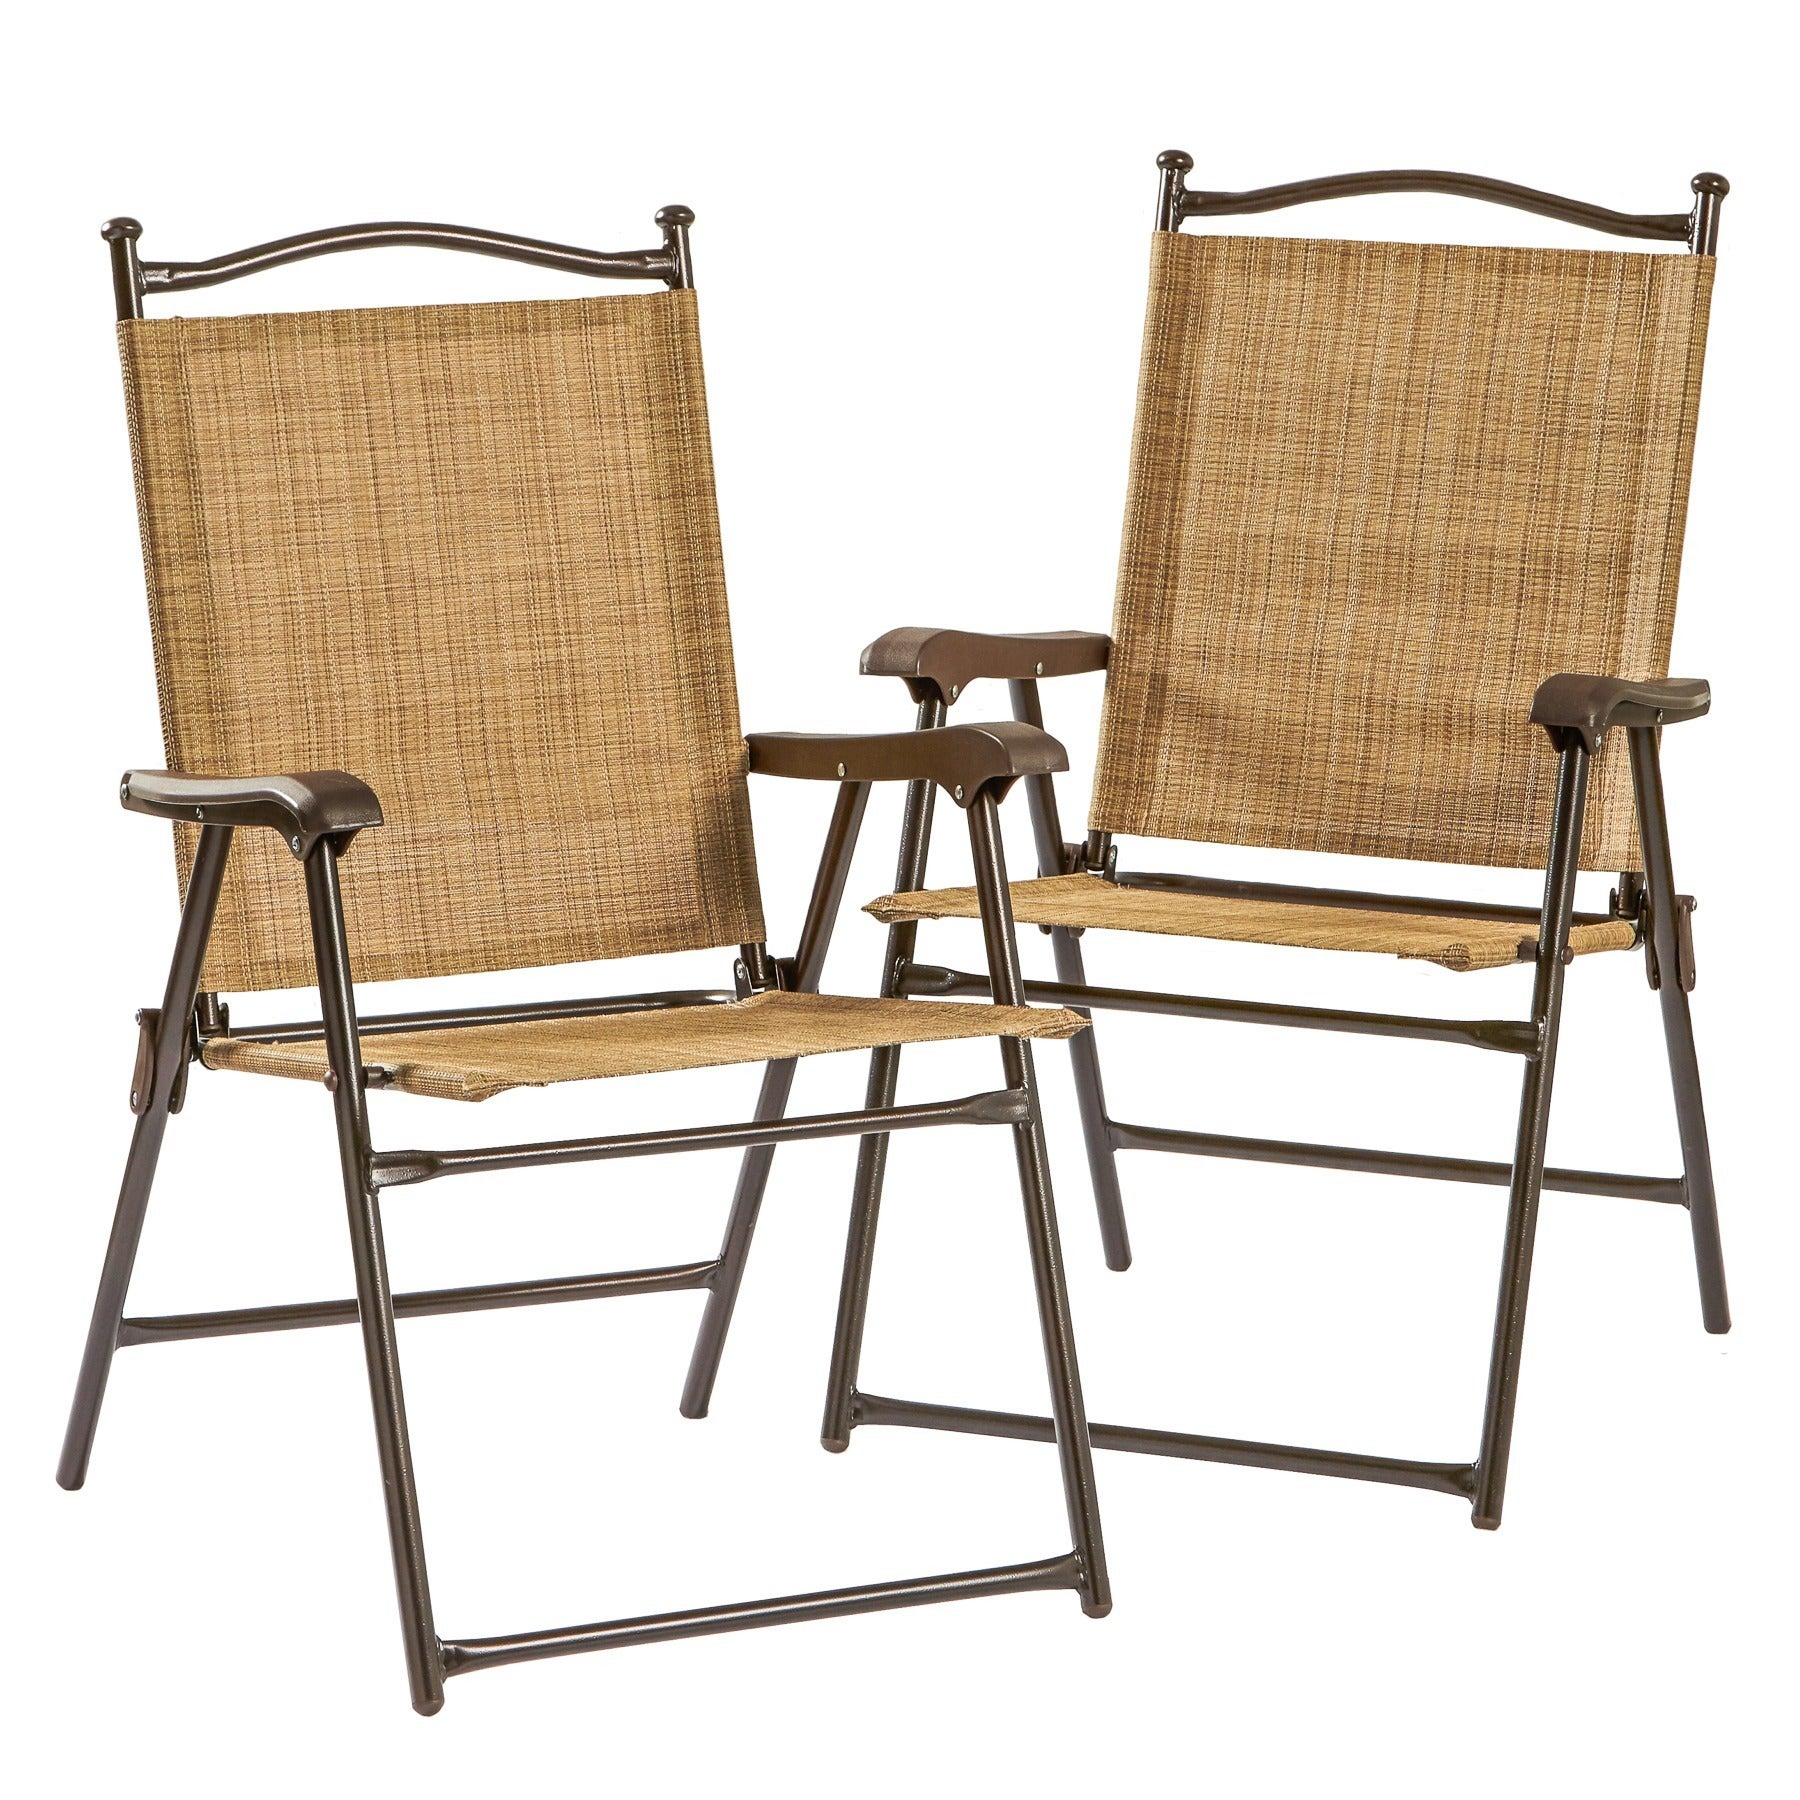 Folding Outdoor Chairs UV Resistant Garden Patio Furniture Set of